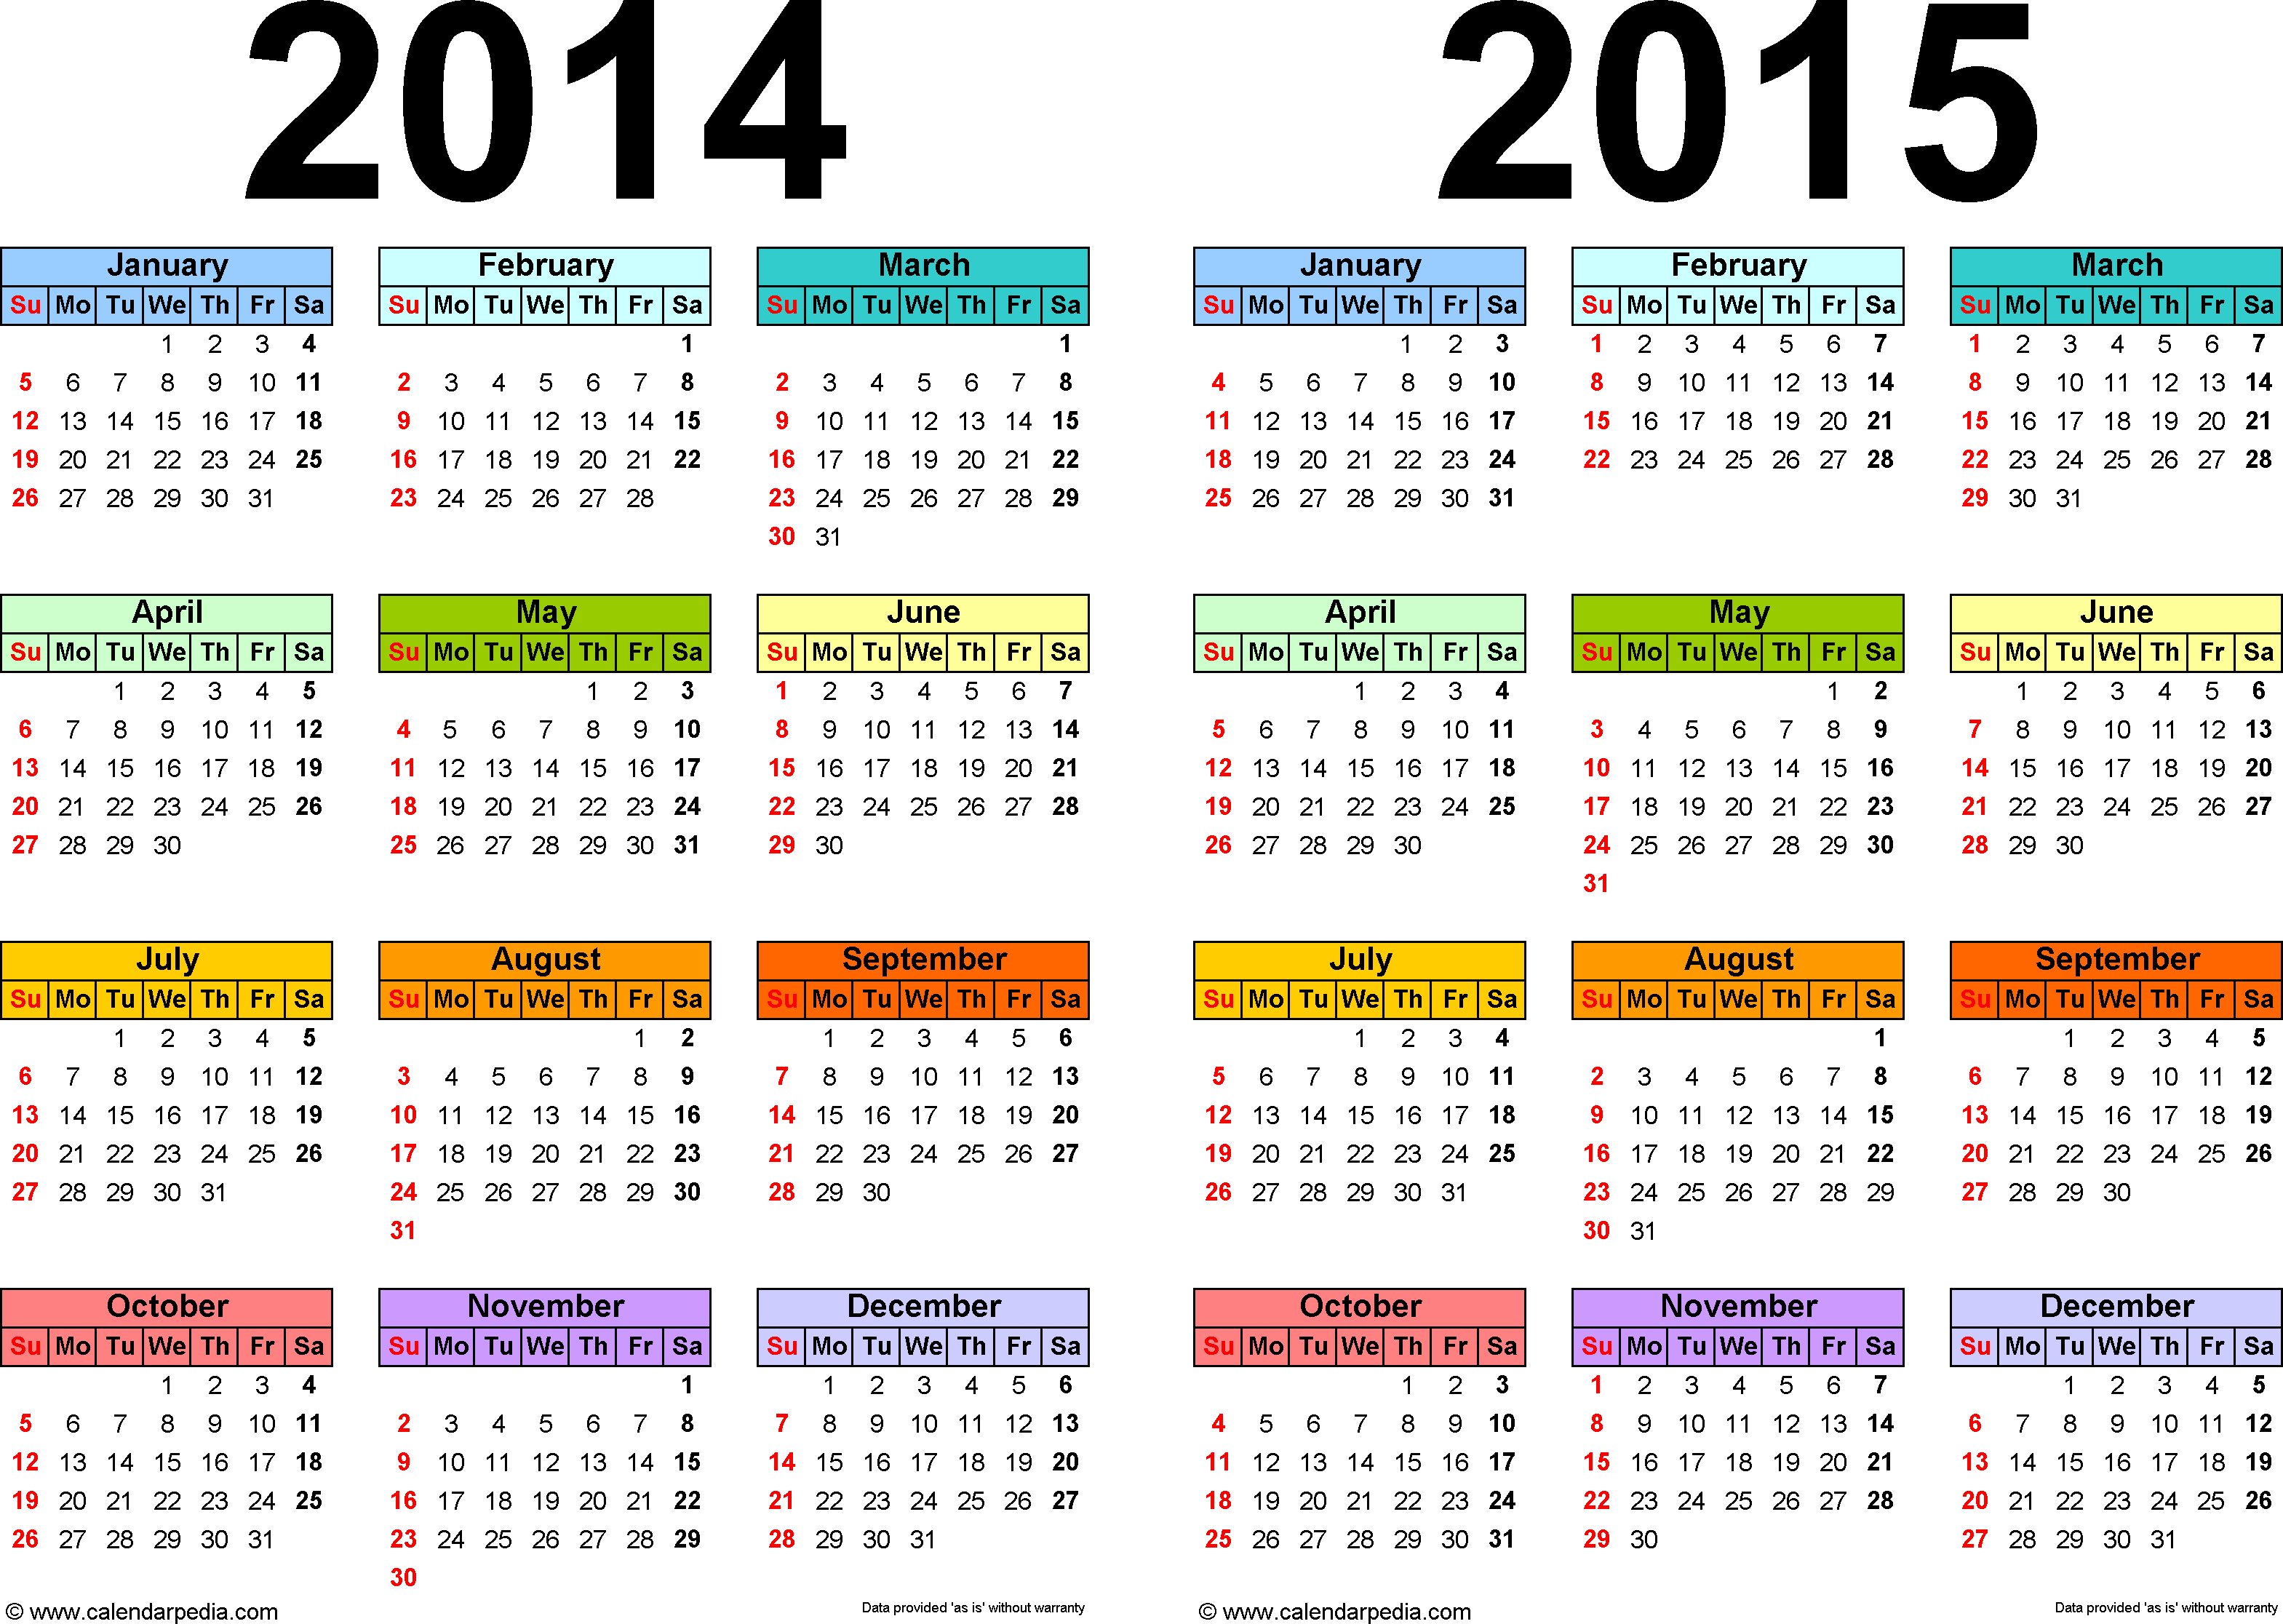 Printable Yearly Calendar 2014 2015 | Calendar On Pictures